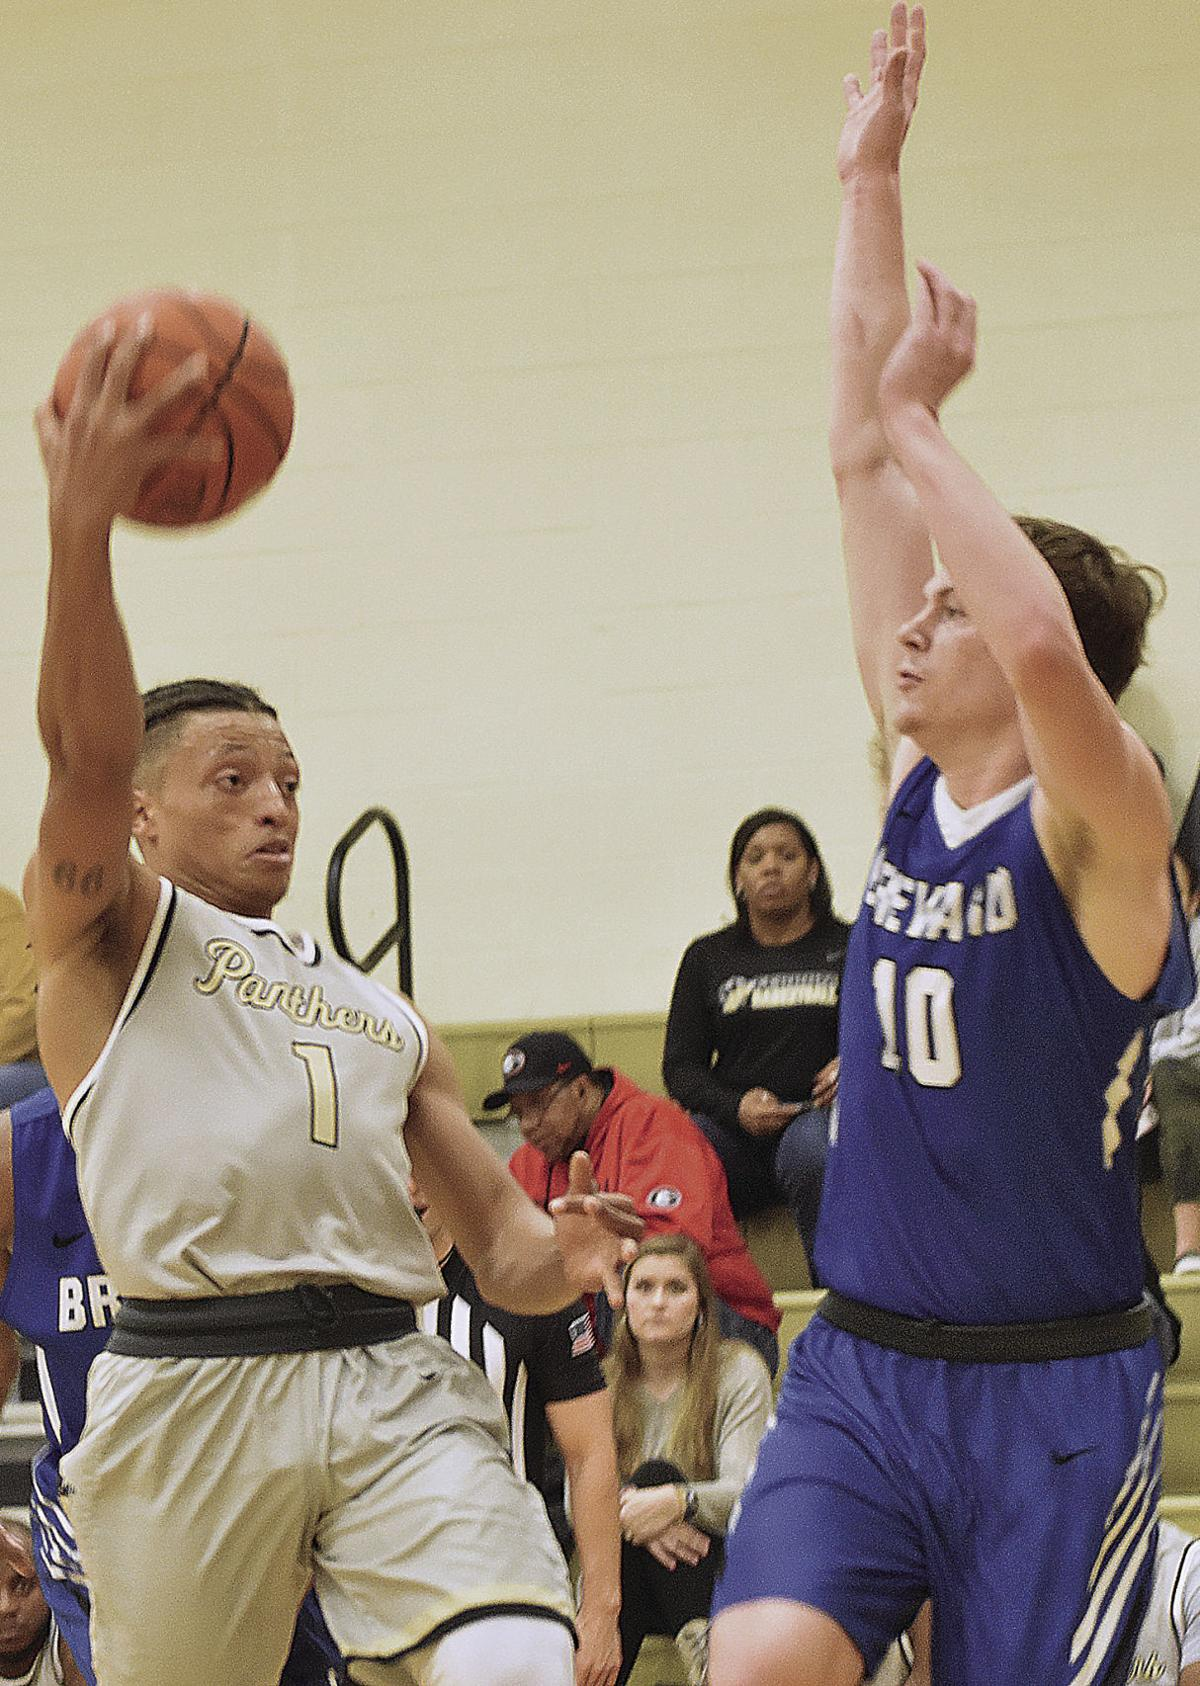 Panthers prevent Tornadoes' touch down